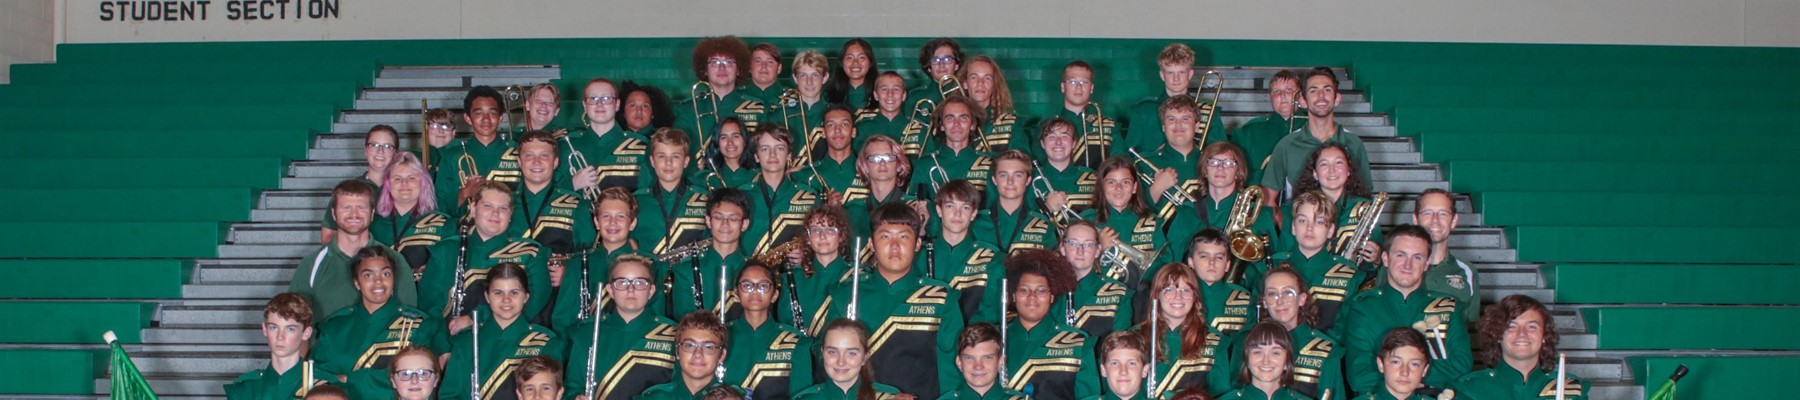 AHS Marching Green and Gold 2019 (2 of 2)